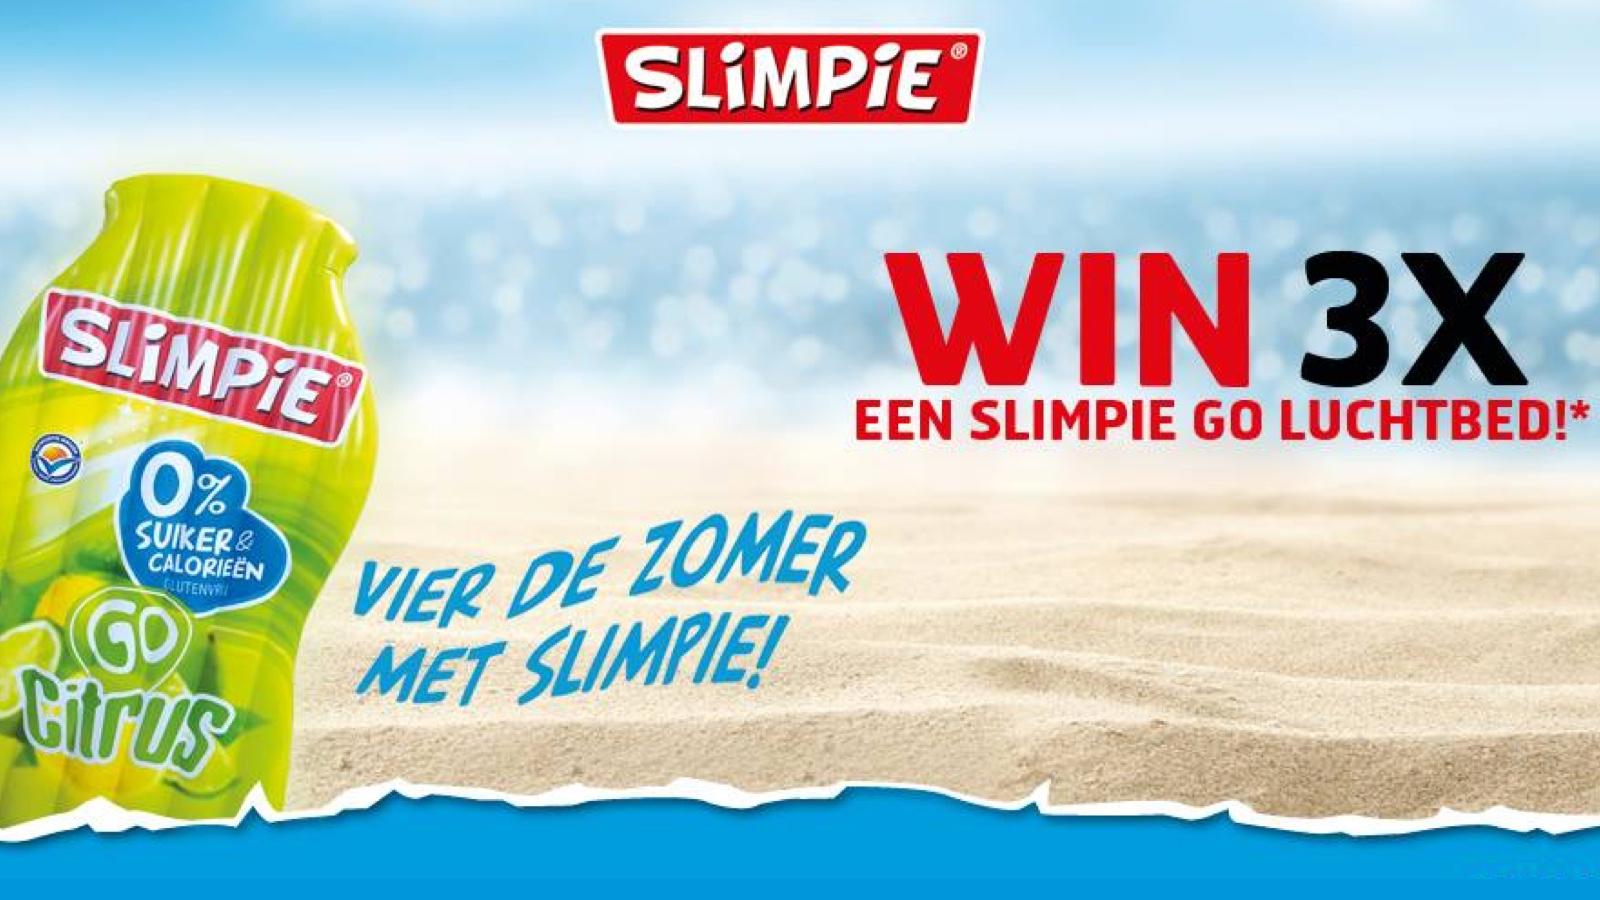 Custom made luchtbedden winactie - Slimpie - Publi air